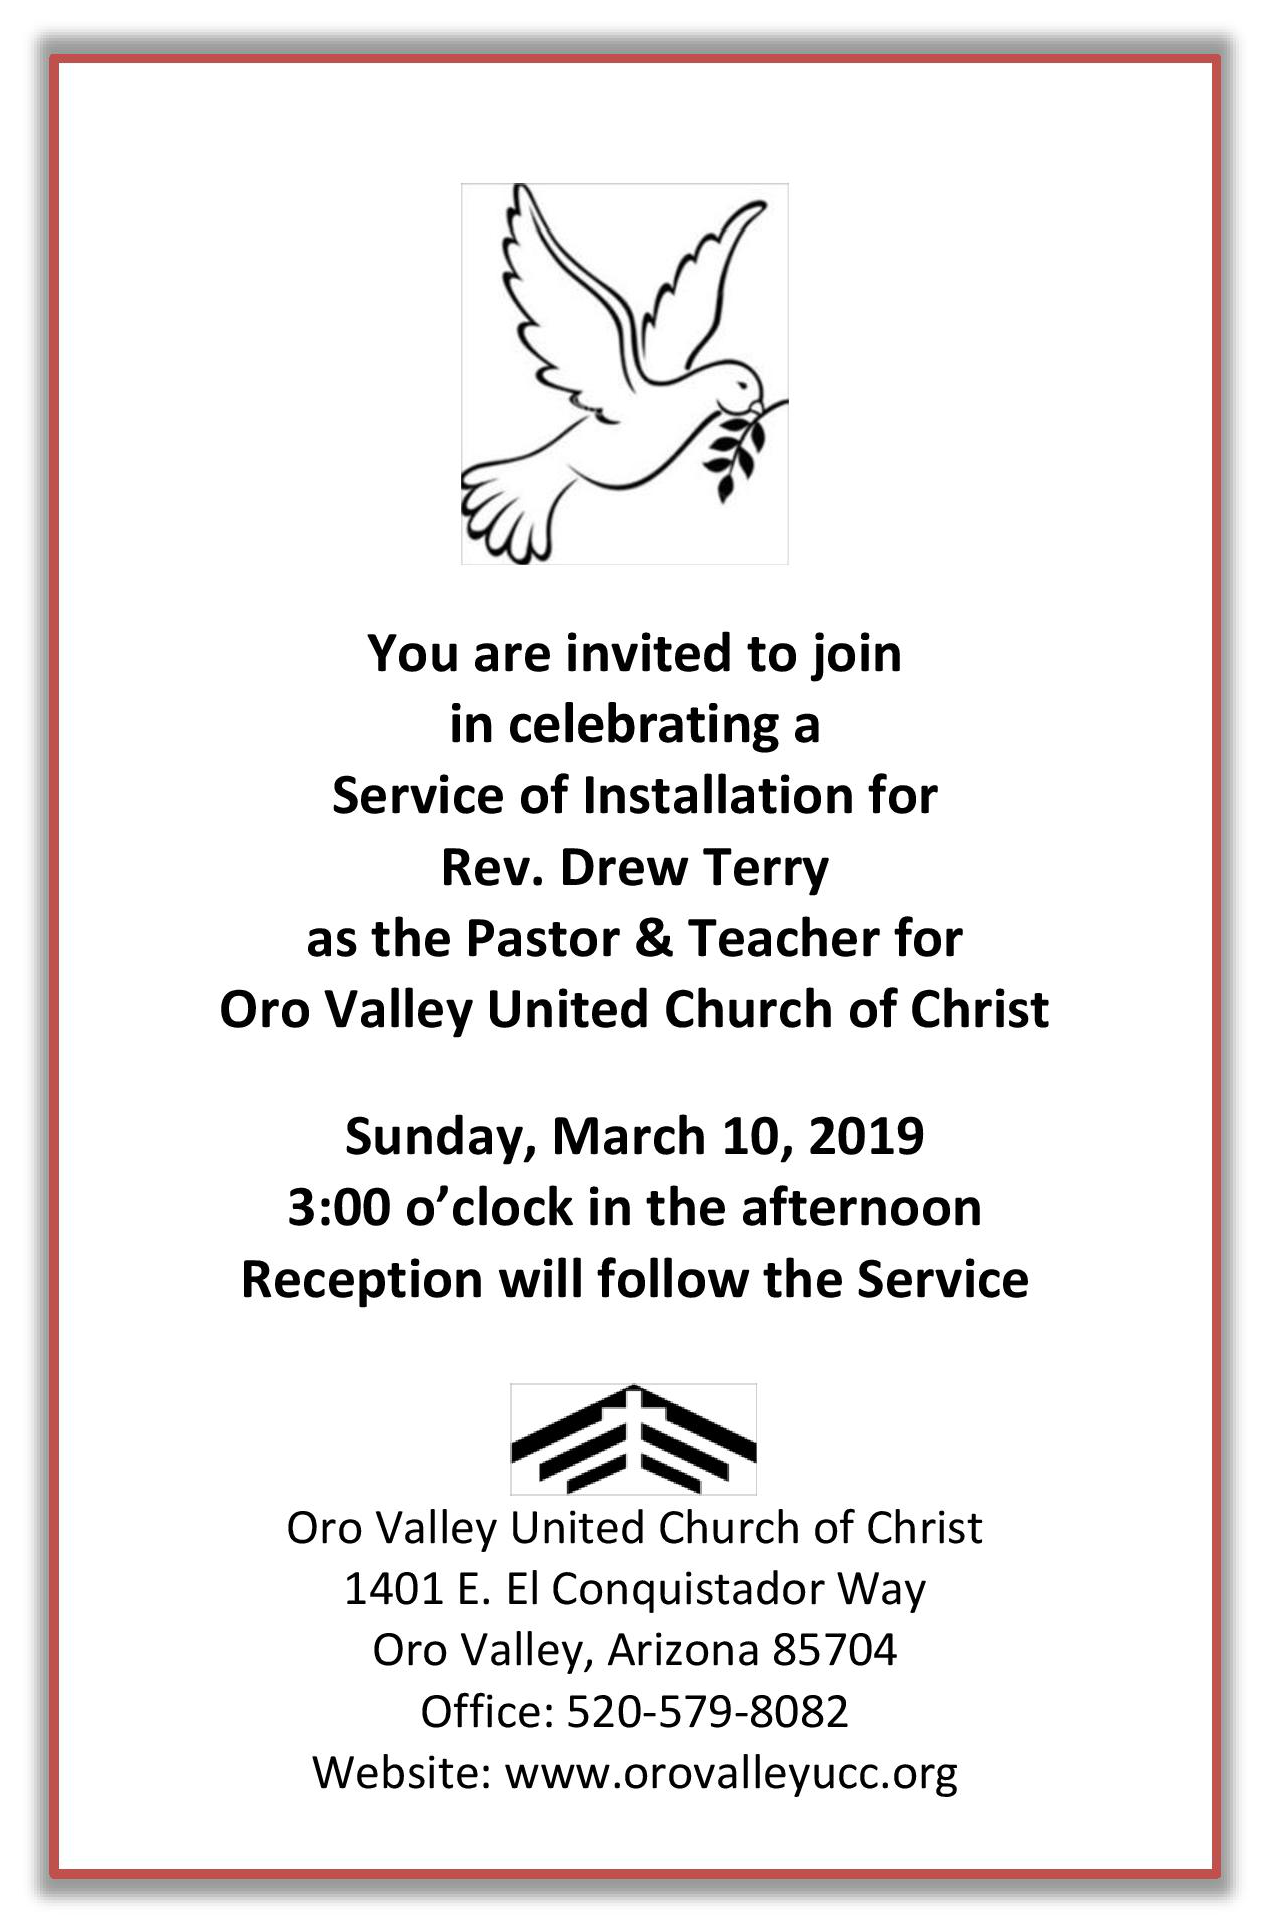 Invitation oro valley ucc installation drew.png